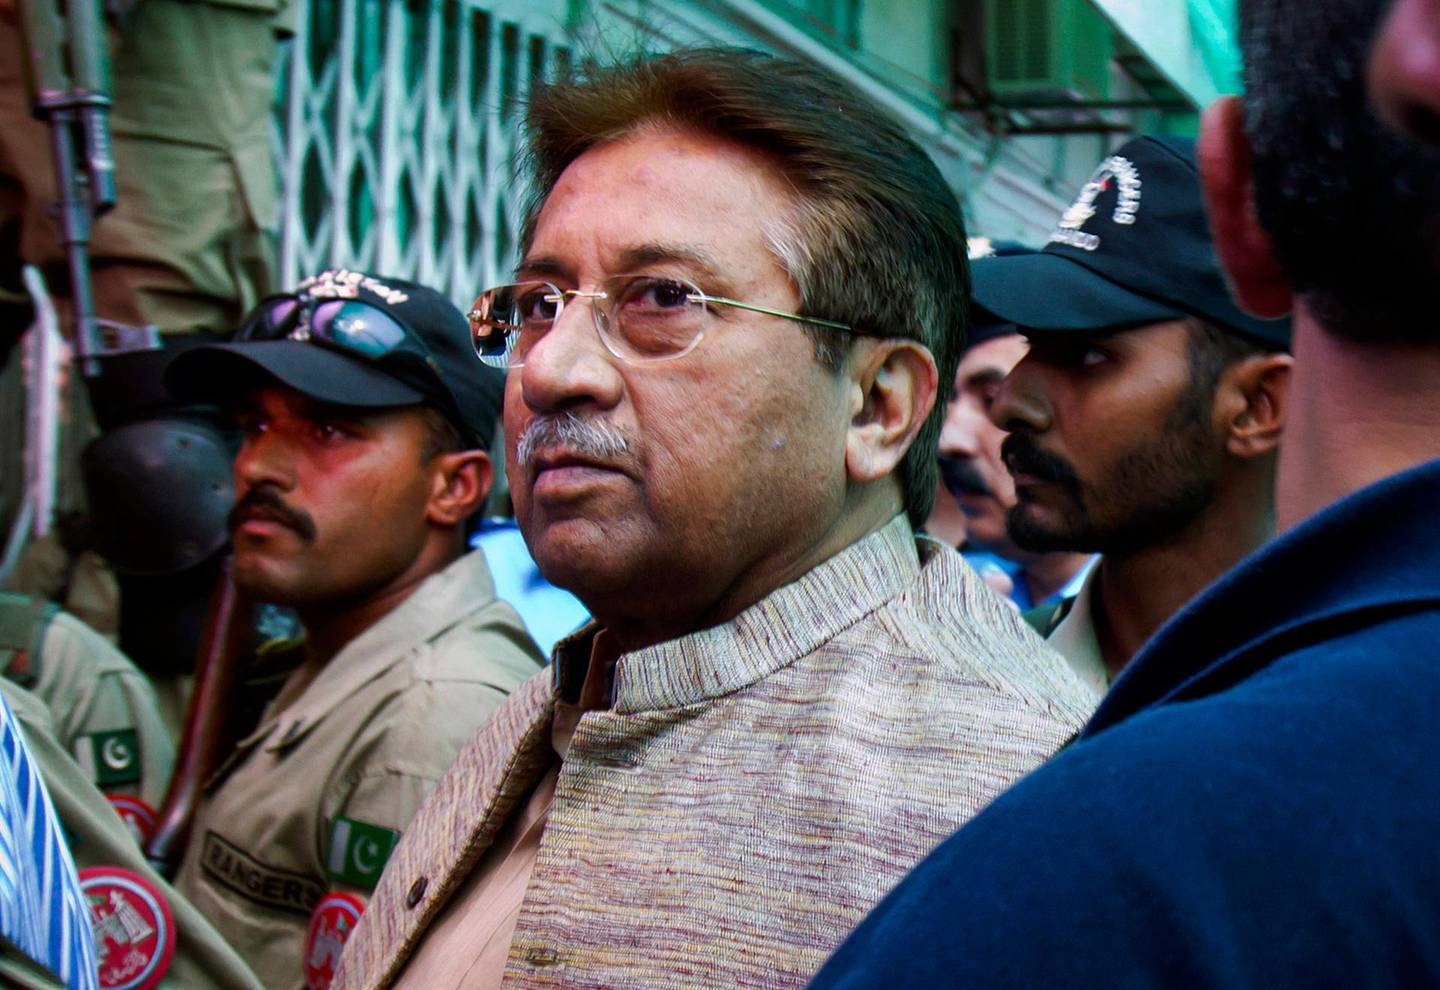 FILE - In this Saturday, April 20, 2013 file photo, Pakistan's former President and military ruler Pervez Musharraf arrives at an anti-terrorism court in Islamabad, Pakistan A lawyer said Tuesday, March 10, 2015 that a Pakistani court has issued arrest warrants for Musharraf in a case related to the death of a radical cleric. (AP Photo/Anjum Naveed, File)